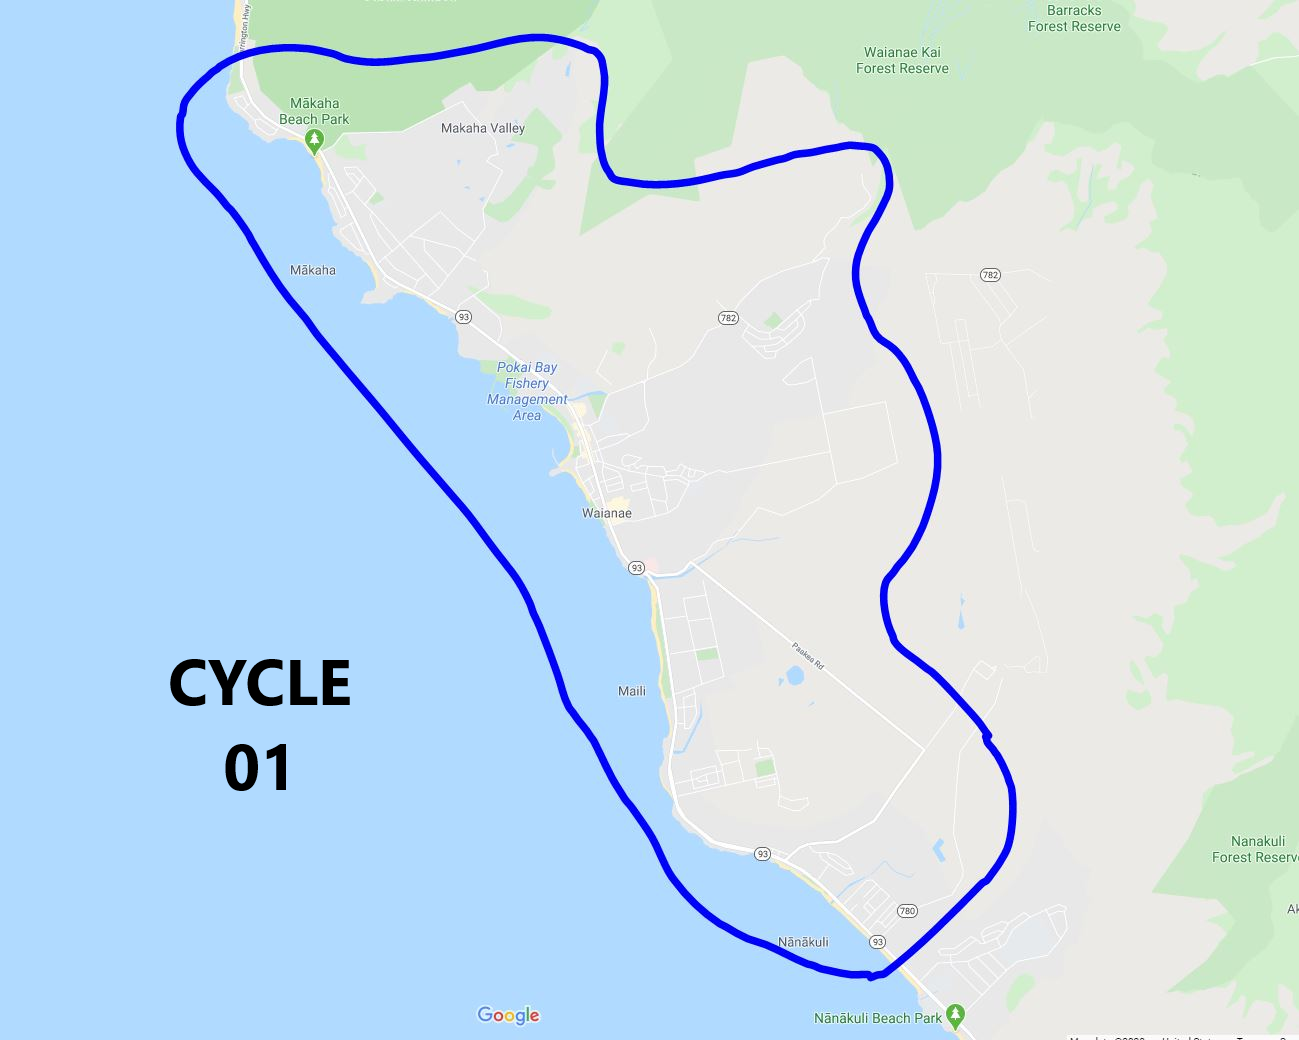 mxu replacement project nanakuli maili waianae makaha cycle 1